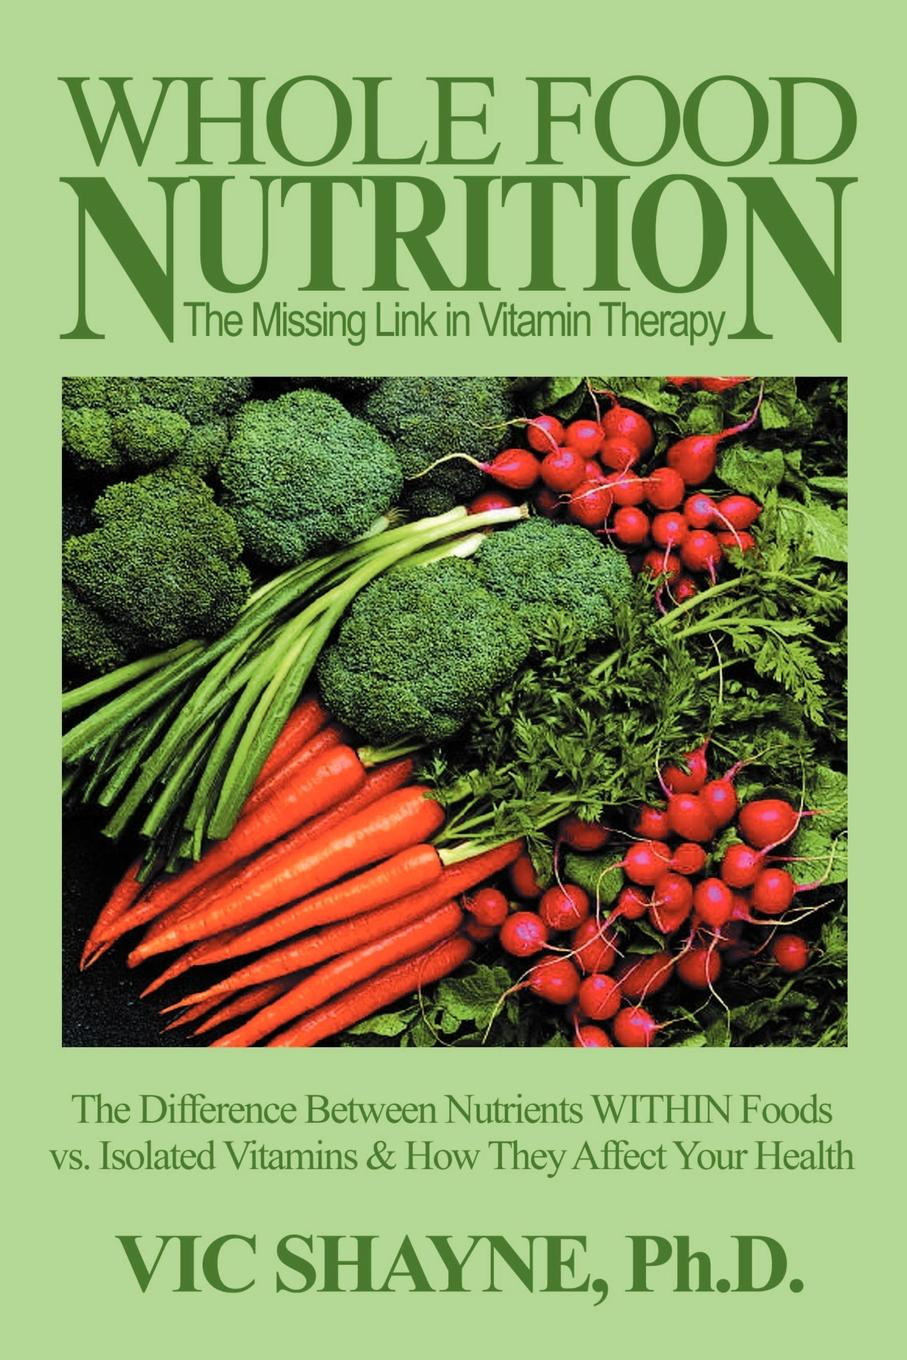 Vic Shayne Whole Food Nutrition. The Missing Link in Vitamin Therapy: Difference Between Nutrients Within Foods Vs. Isolated Vitamins & How They Affect Your